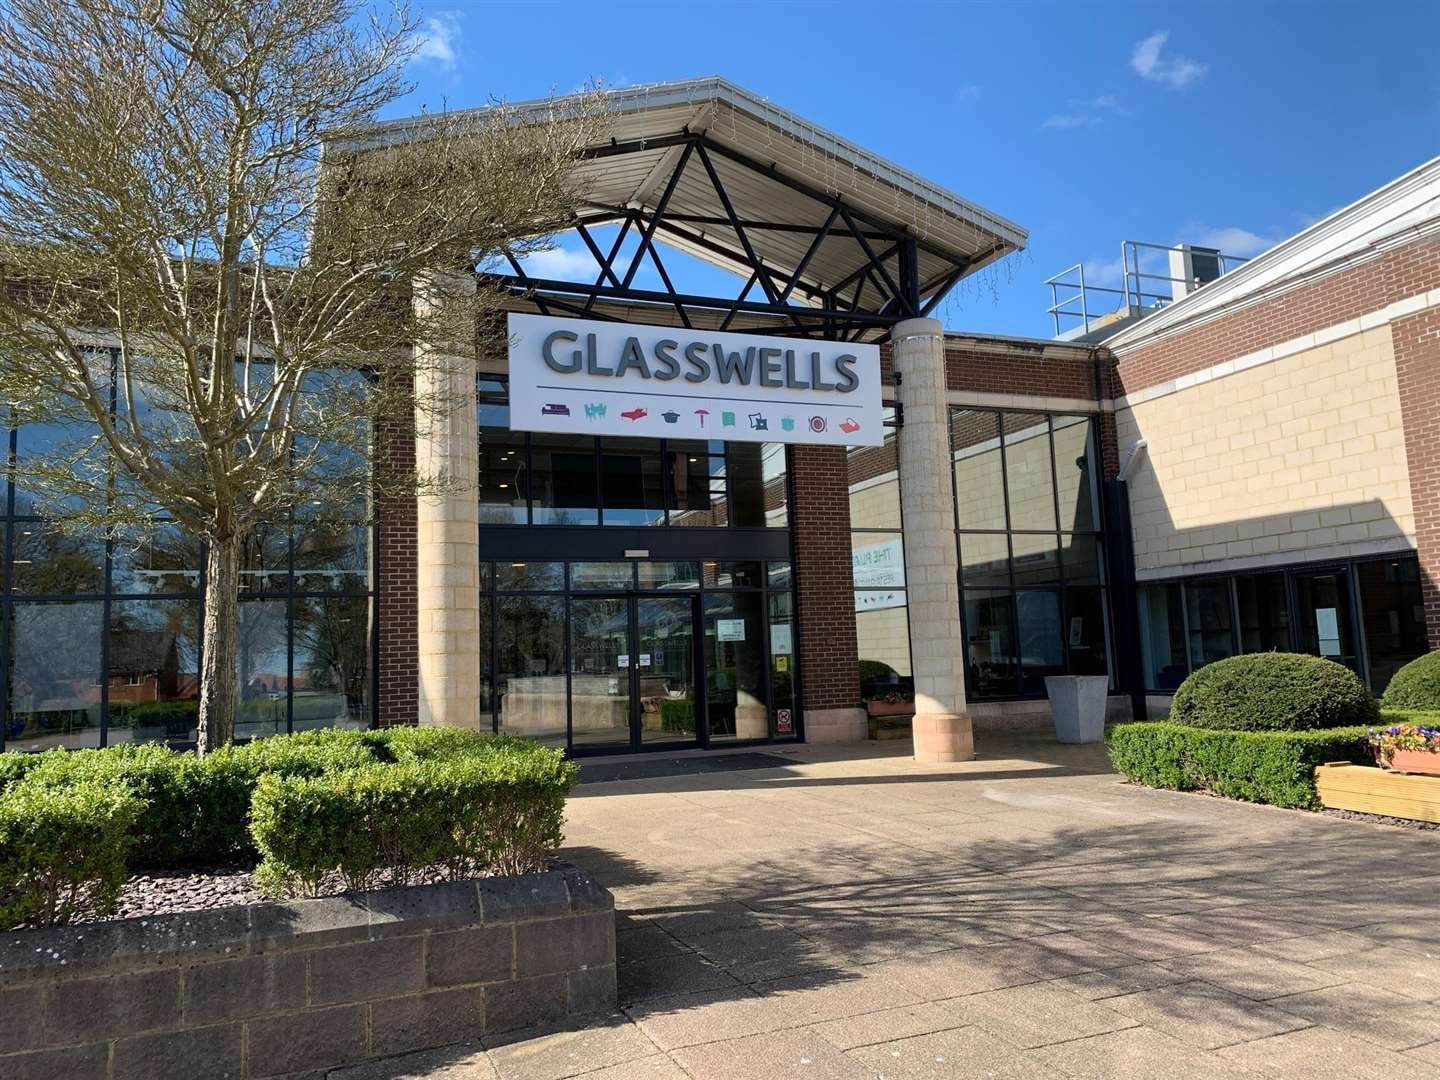 The Glasswells shop, in Bury St Edmunds, has received a £250,000 investment